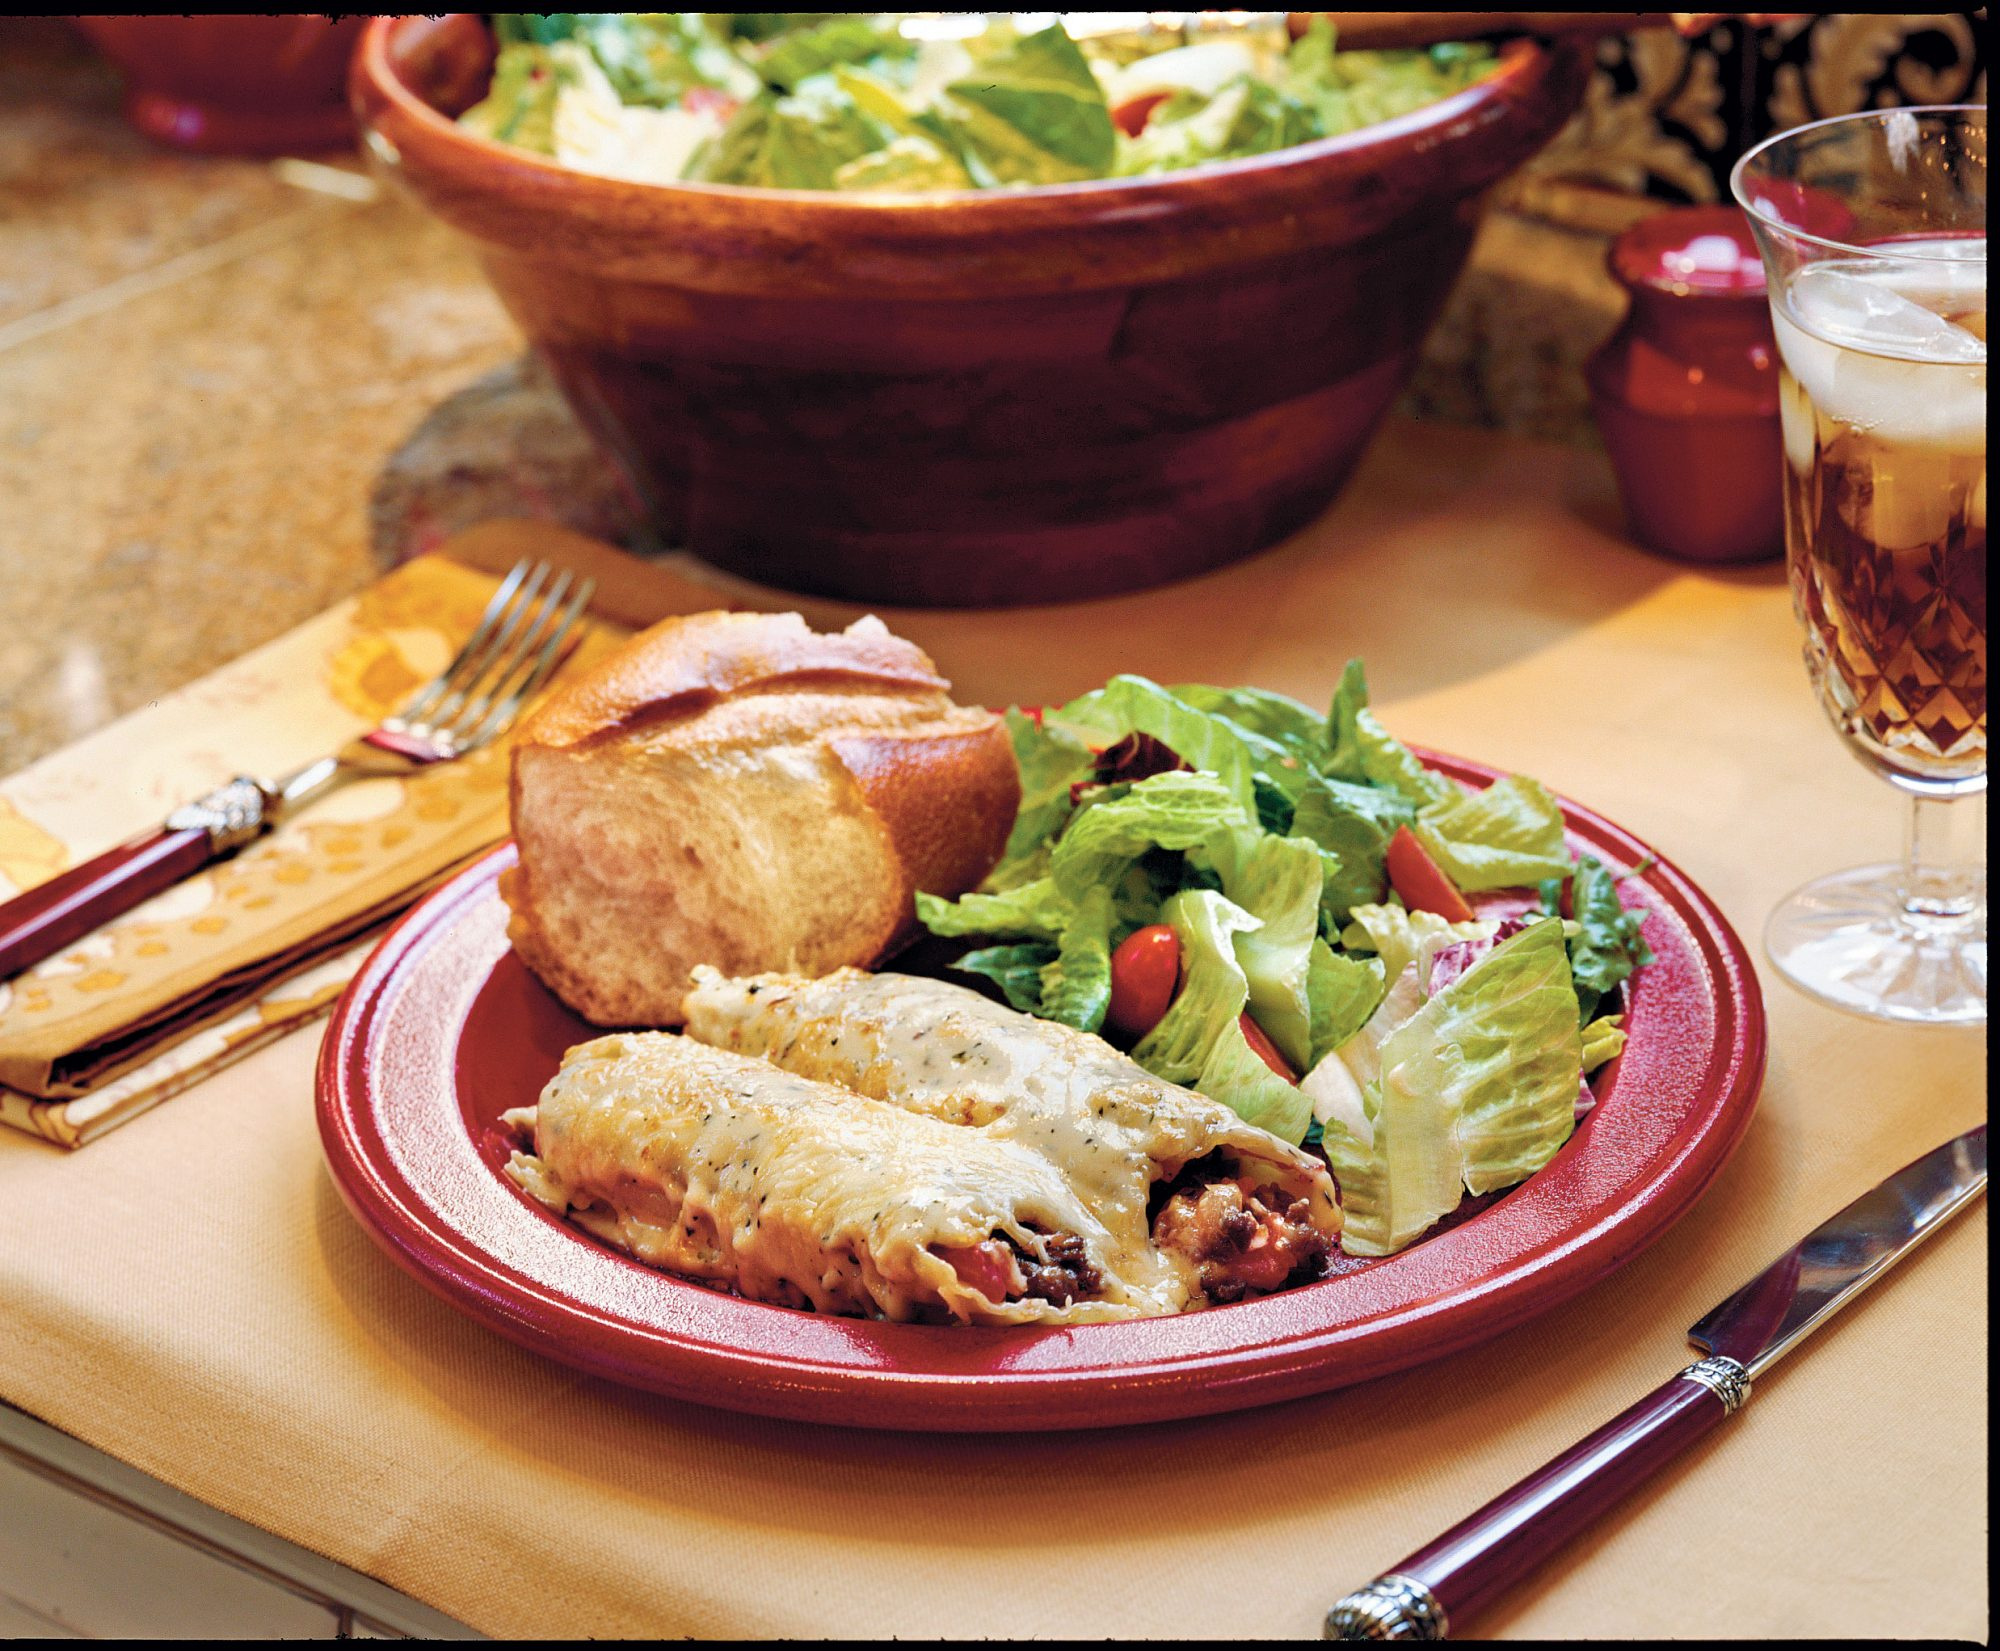 Ground Beef Recipes: Meaty Cheesy Manicotti